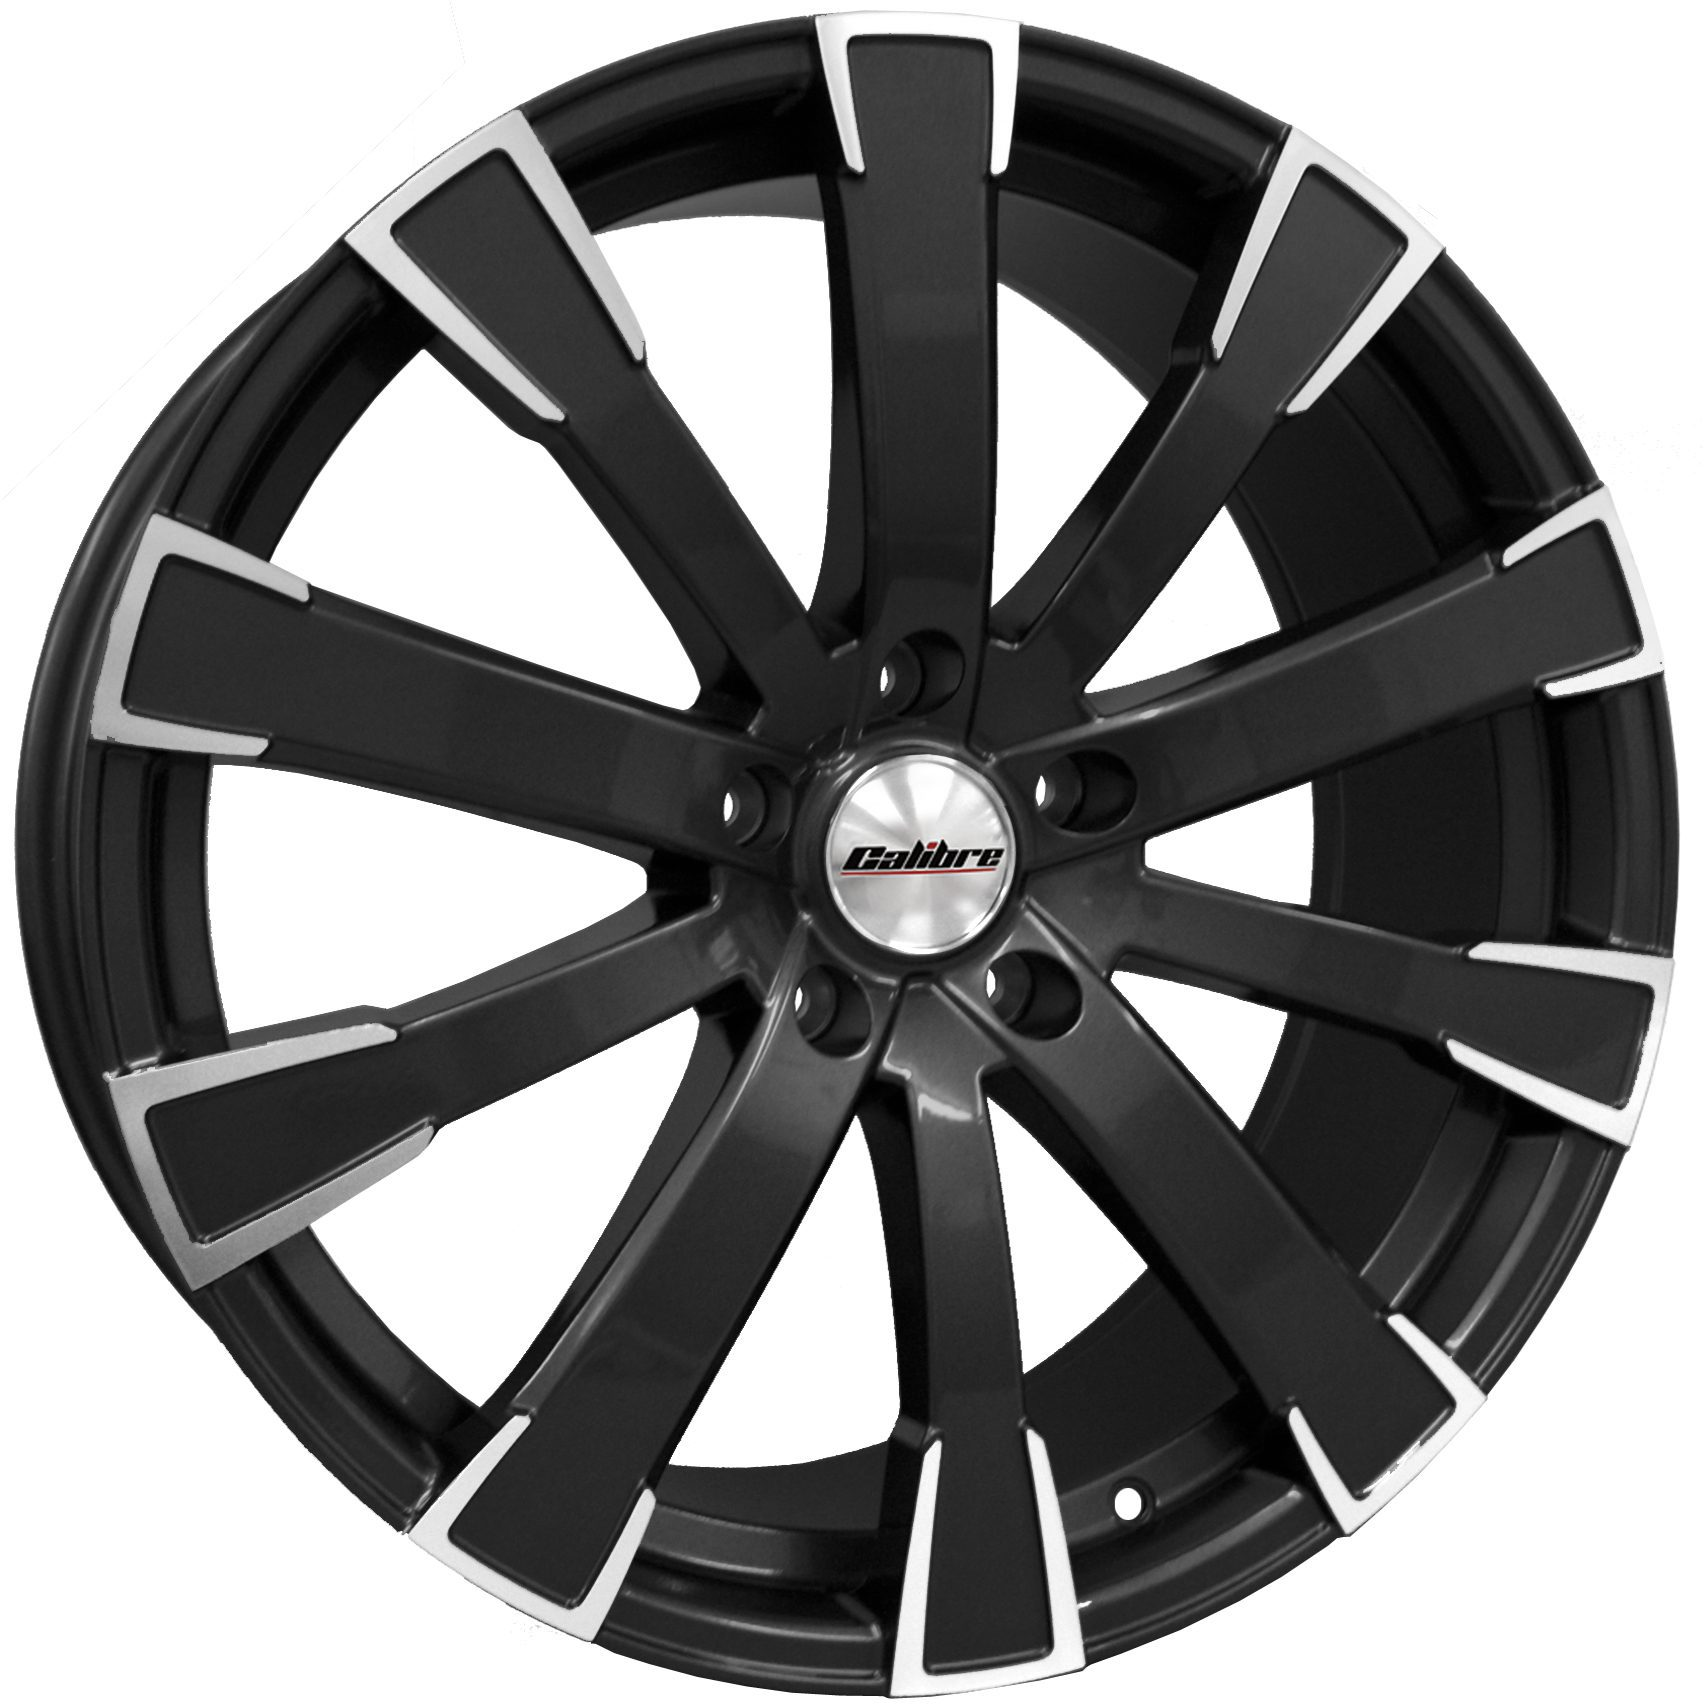 "Rim Calibre Manhattan 8.5x20"" Black Polished Face 5x120 ET45"